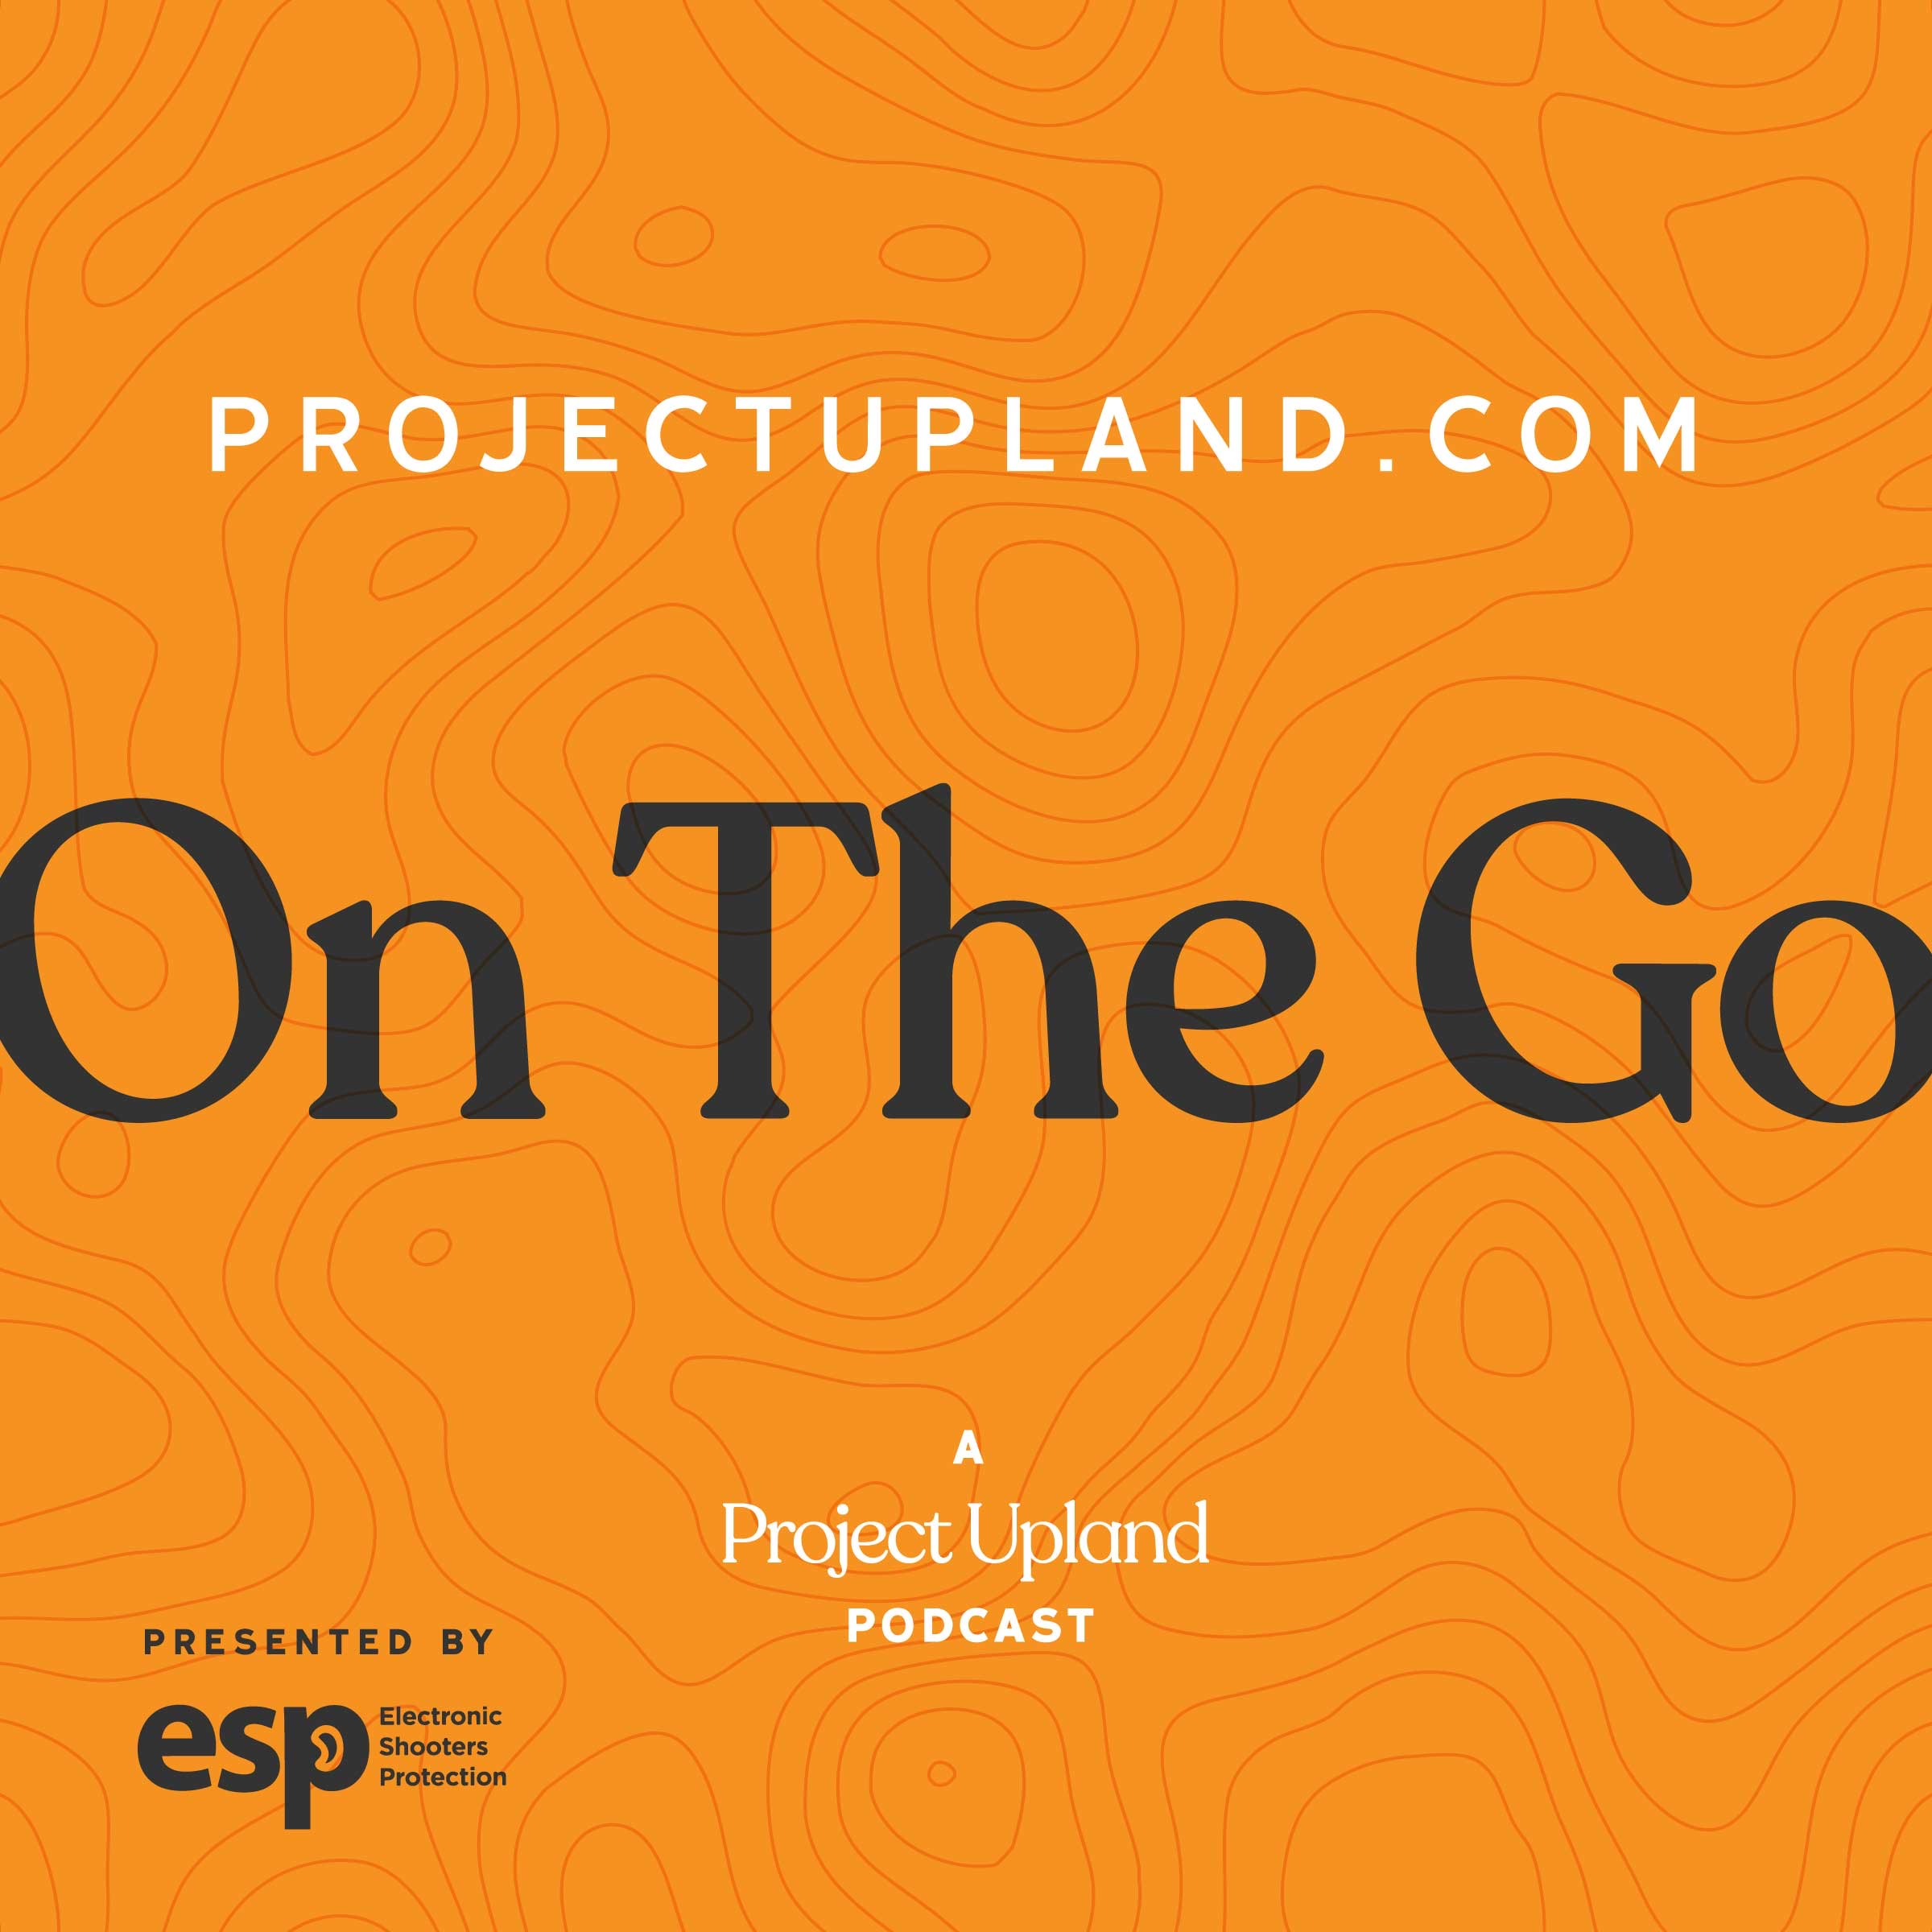 projectupland.com On The Go show art